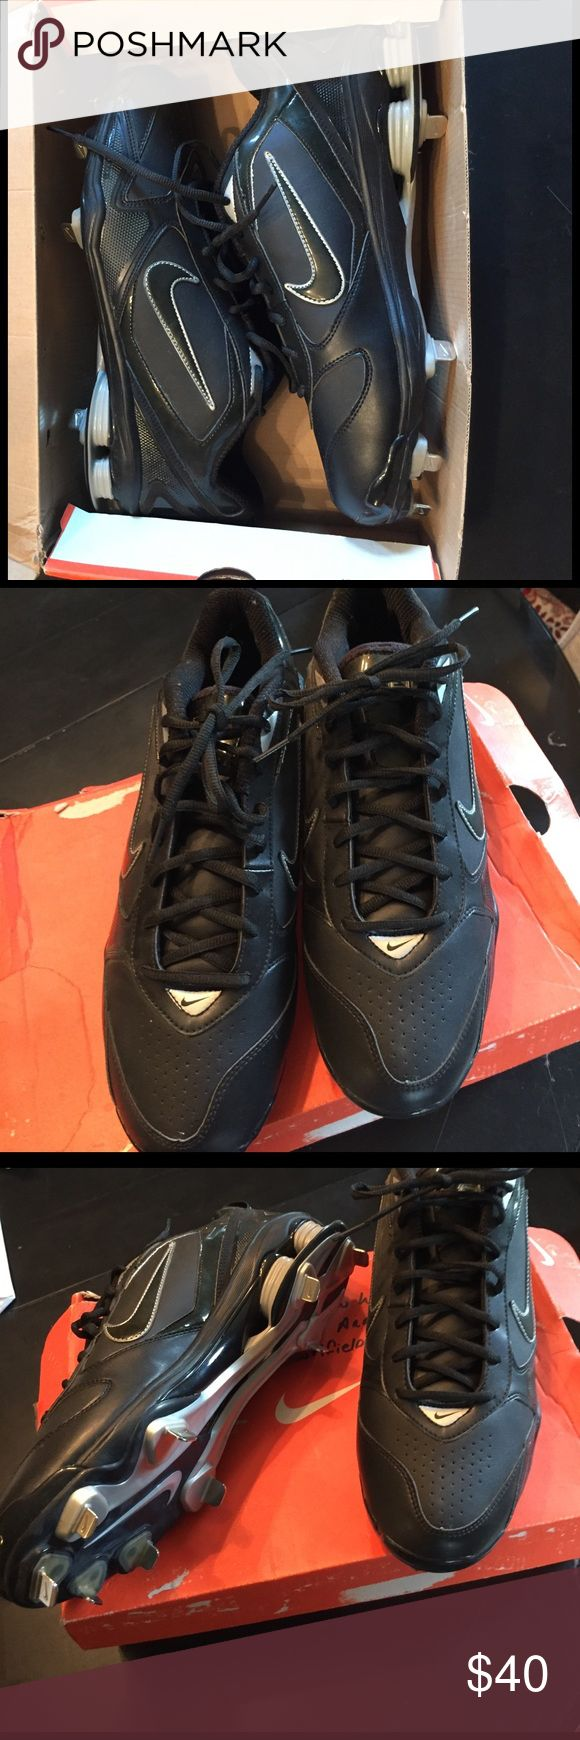 Size 12 Nike Shox Fuse 2 Baseball Cletes Never worn!   Nike Framelite black leather metal spikes with metallic silver.   Fabulous shape - still in box. Nike Shoes Athletic Shoes